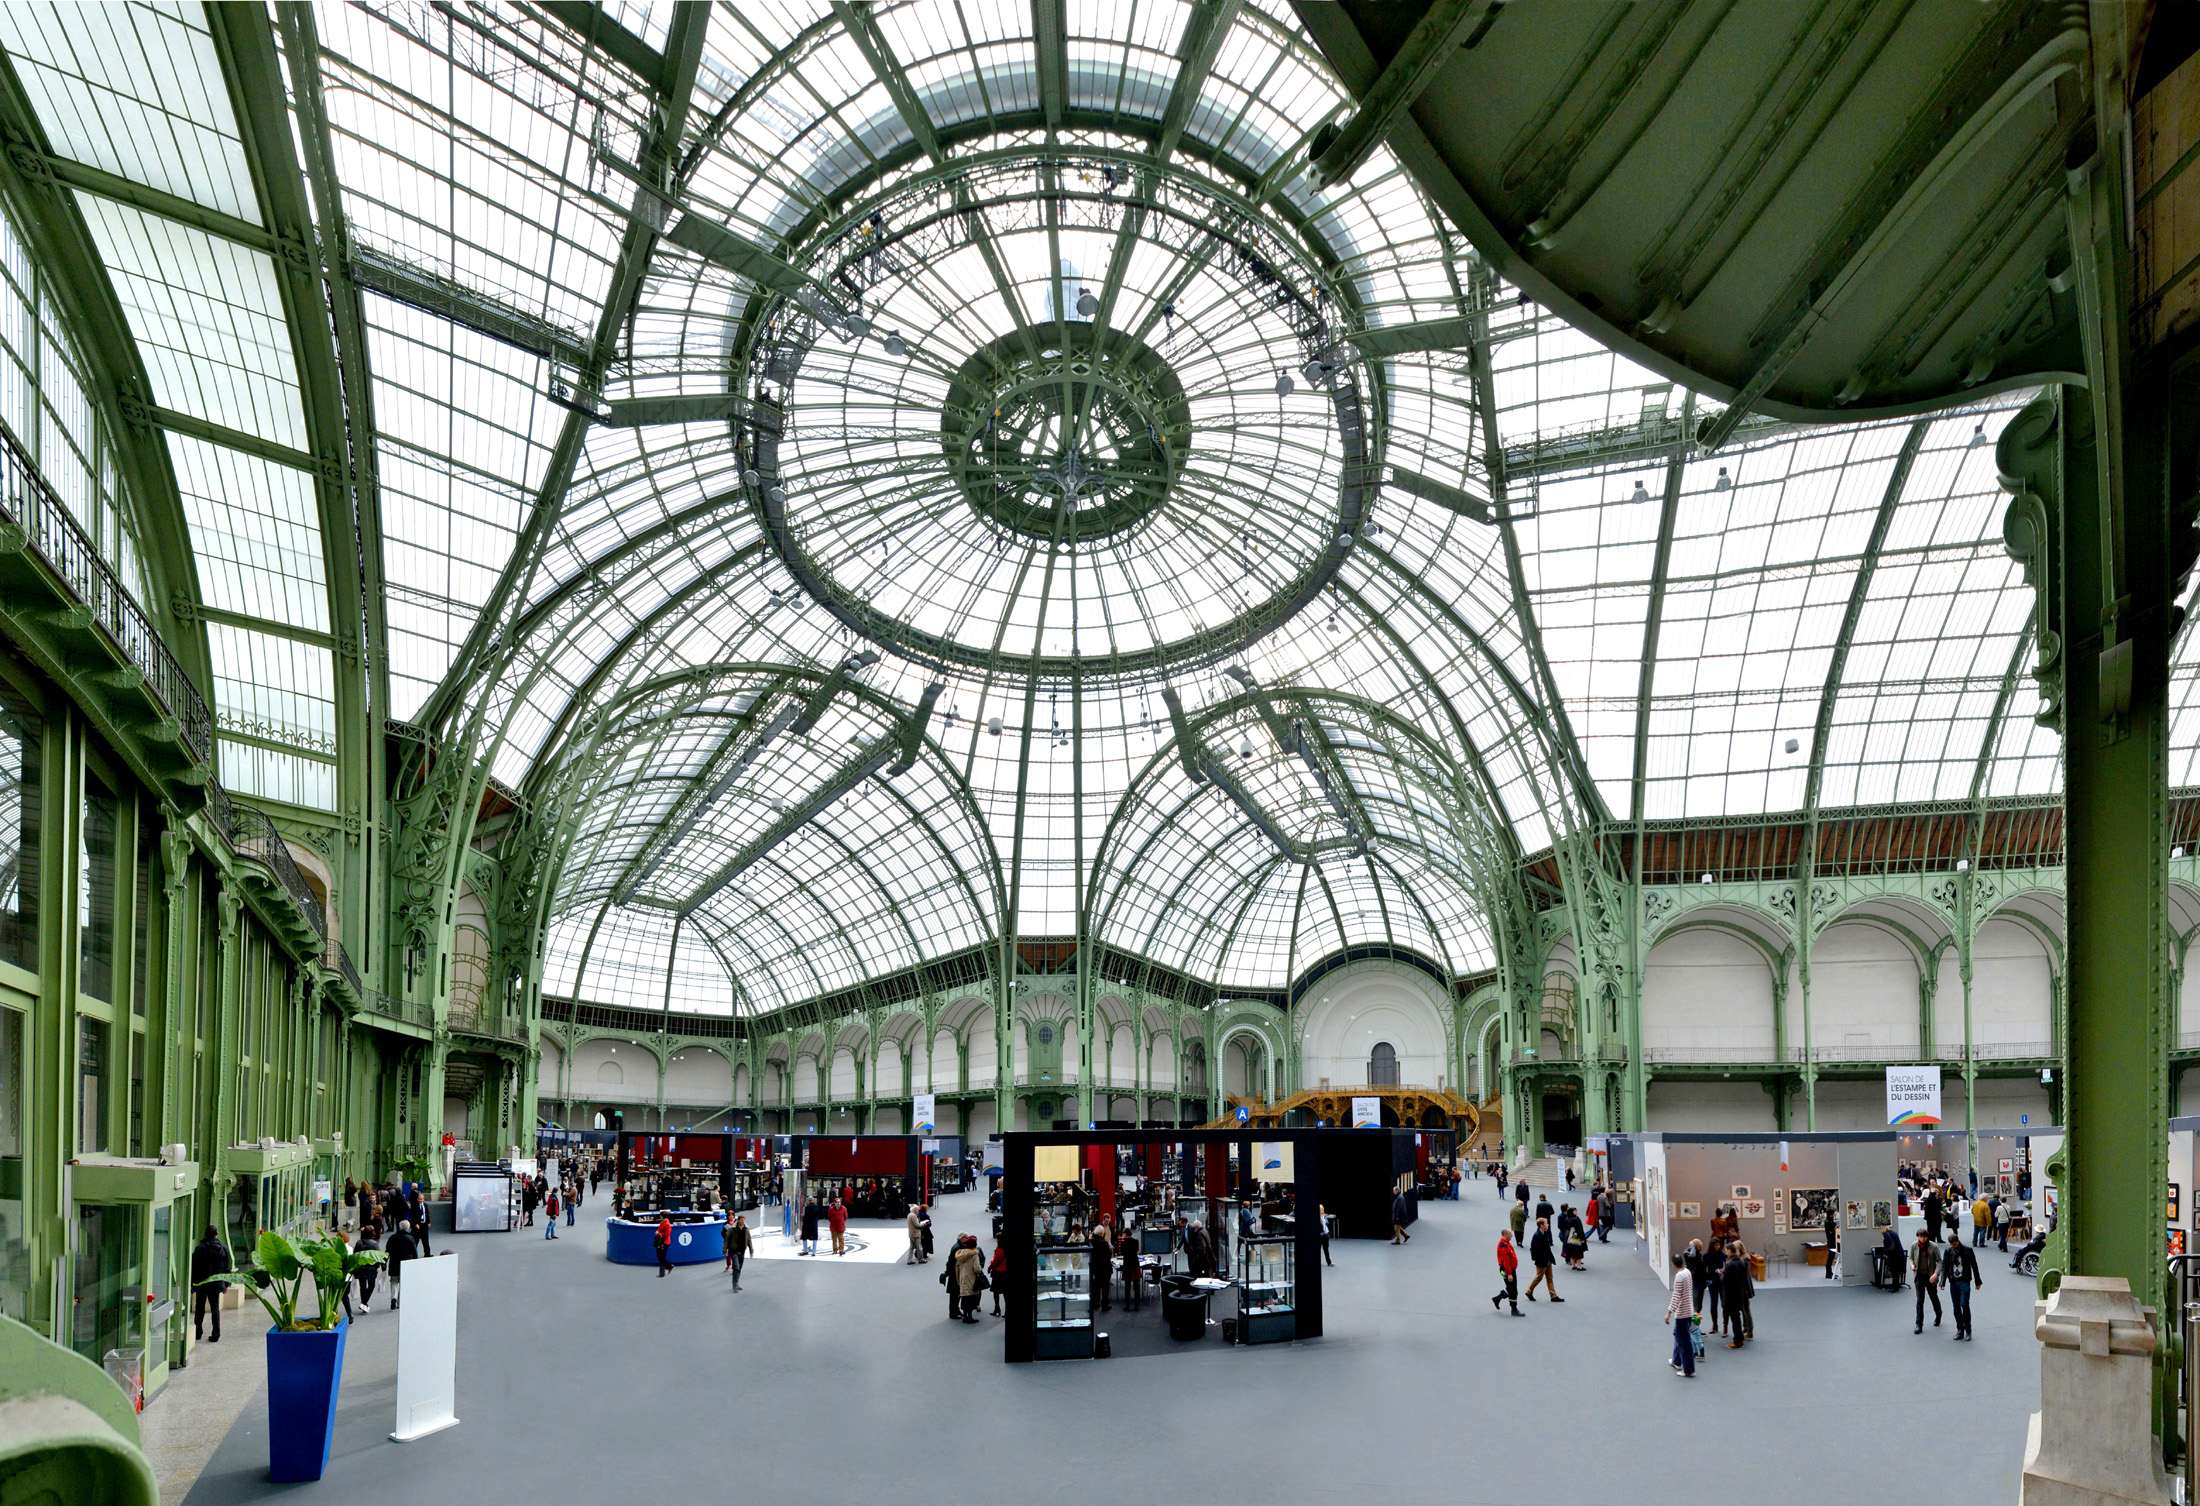 651-grand_palais_interieur-paris.jpg